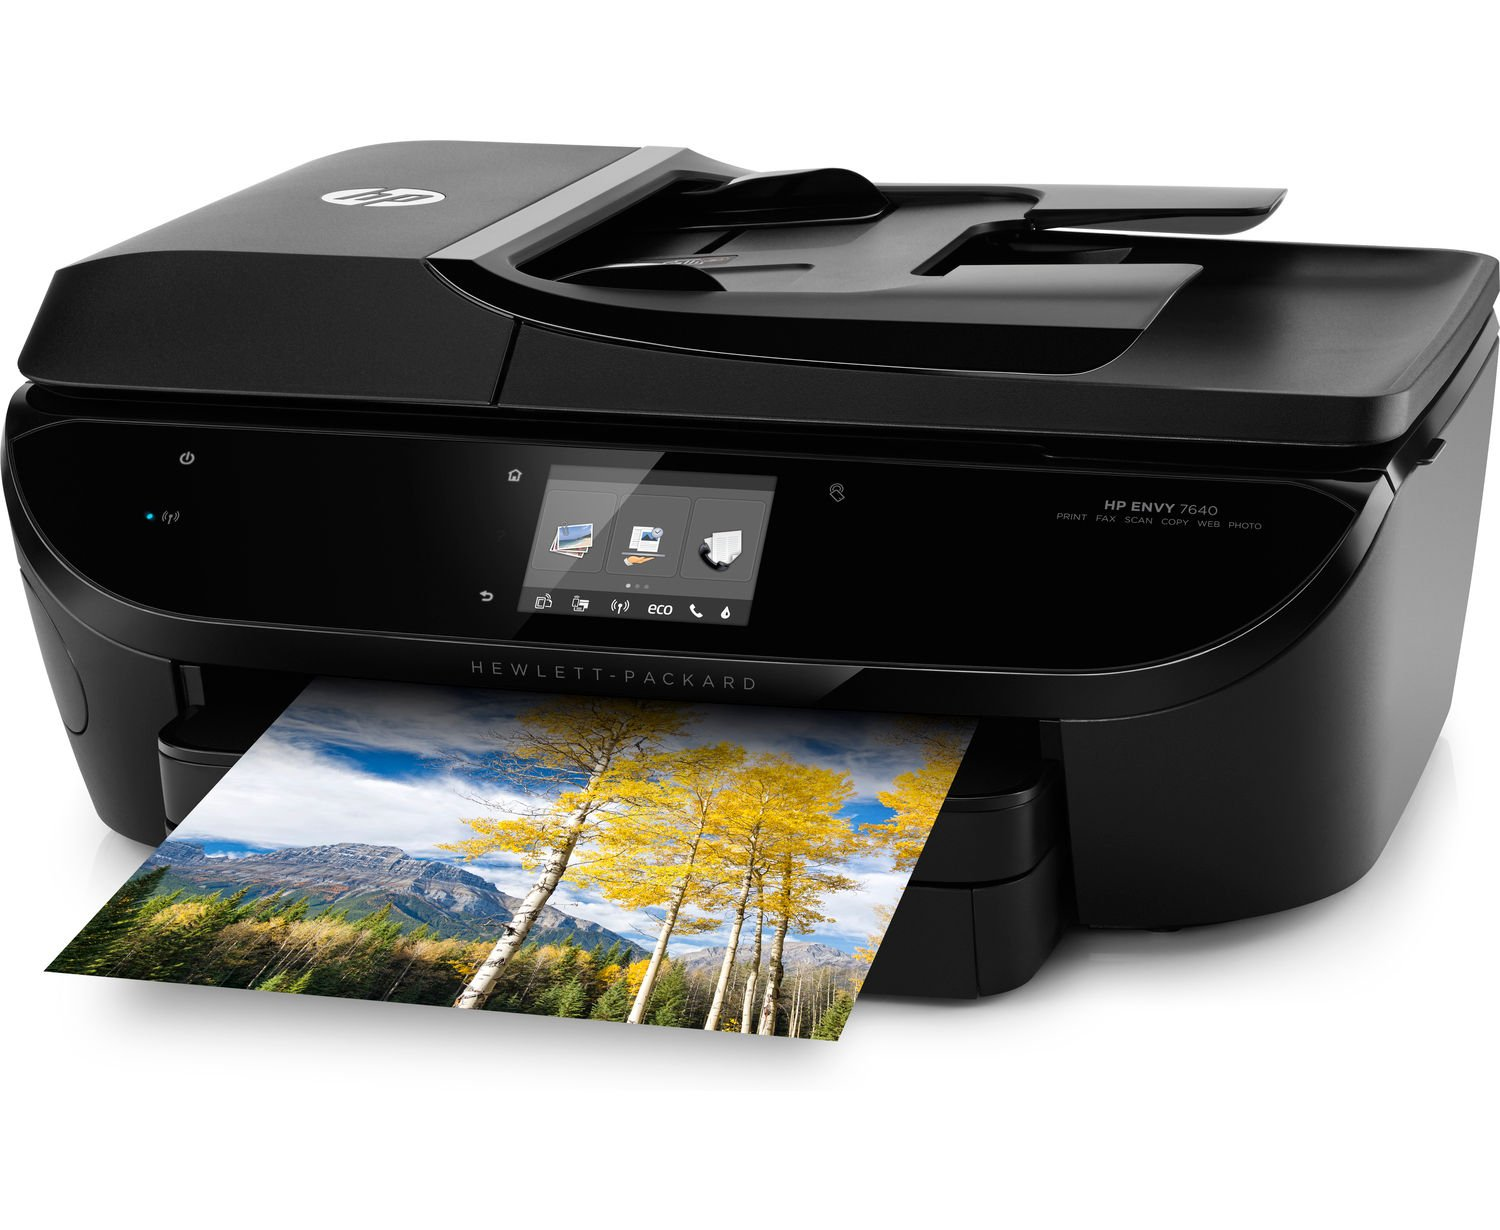 HP ENVY 7644 e-All-in-One Photo Quality Inkjet Printer, wireless printing, mobile phone compatible, in black (Renewed) by HP (Image #4)